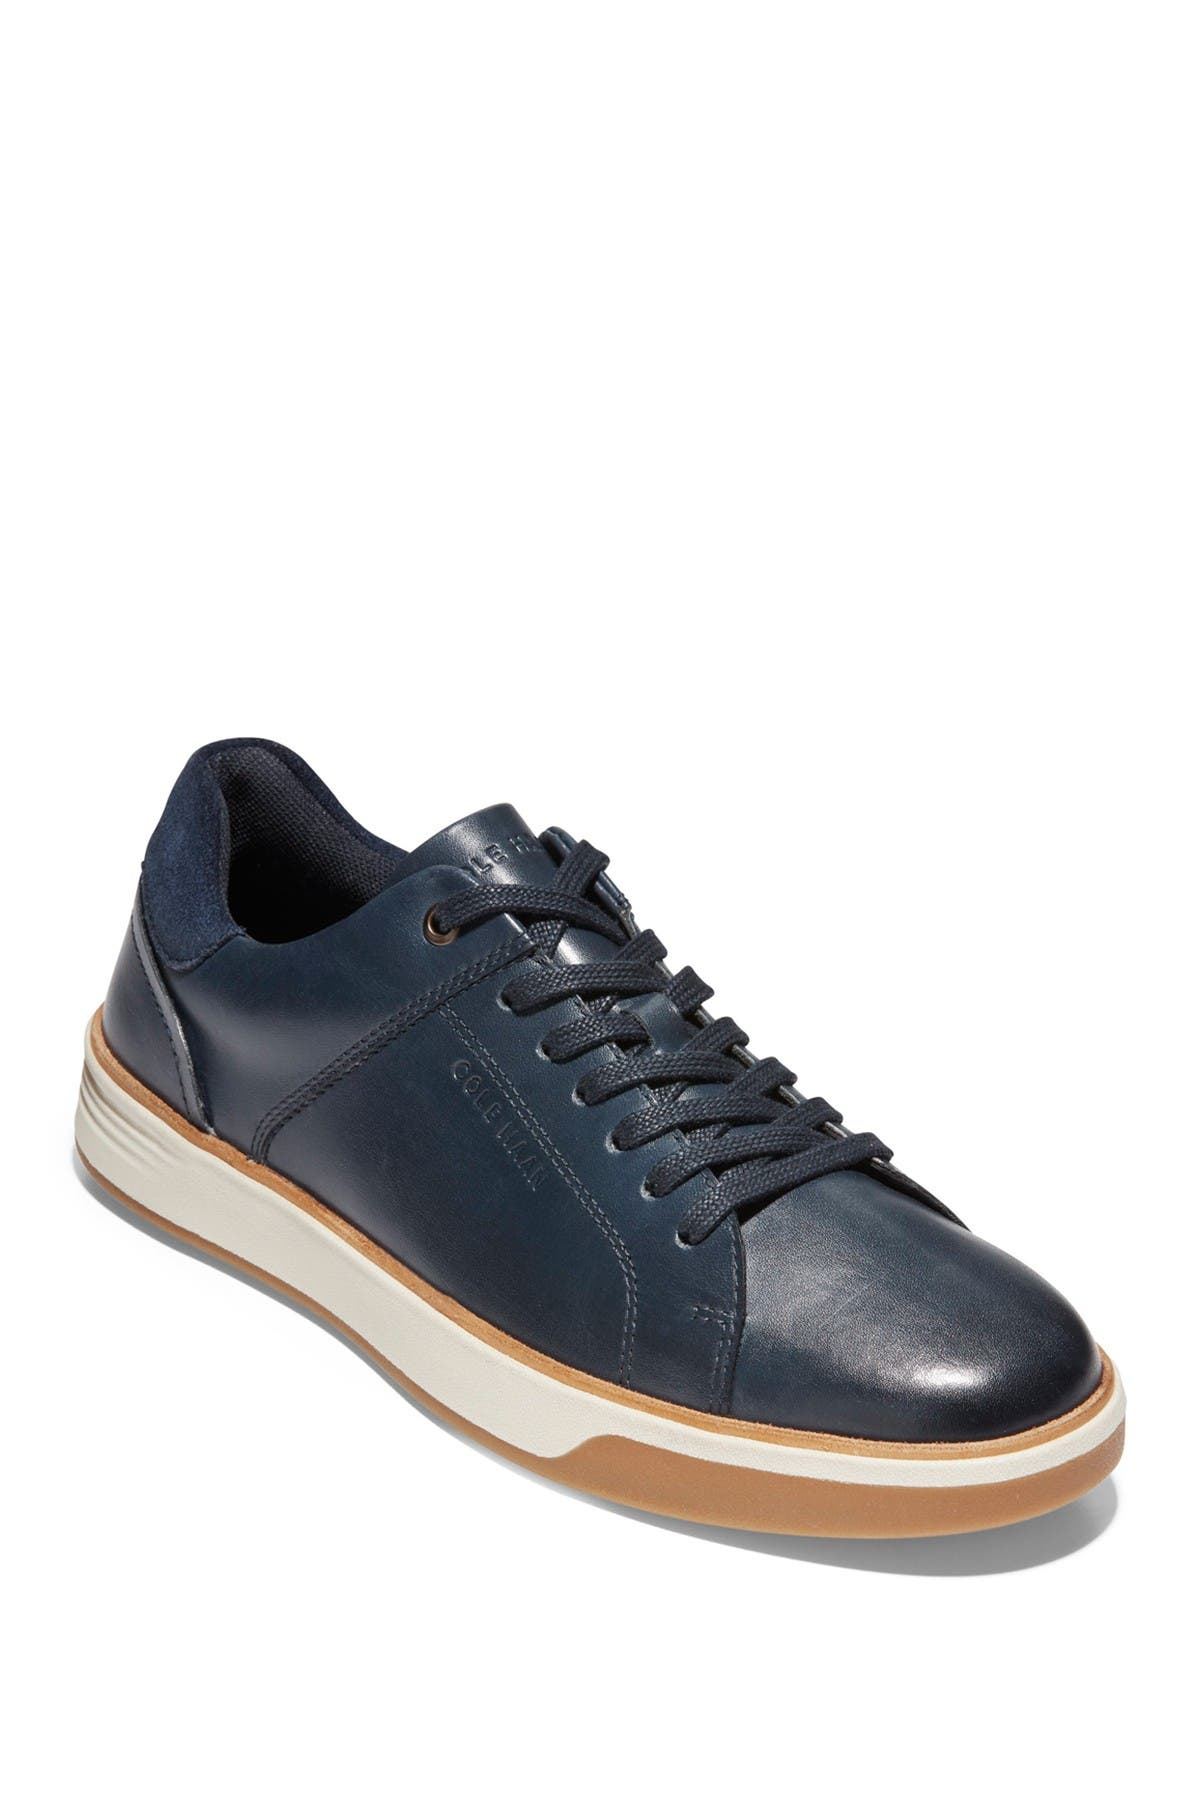 Image of Cole Haan Grand Crosscourt Sneaker